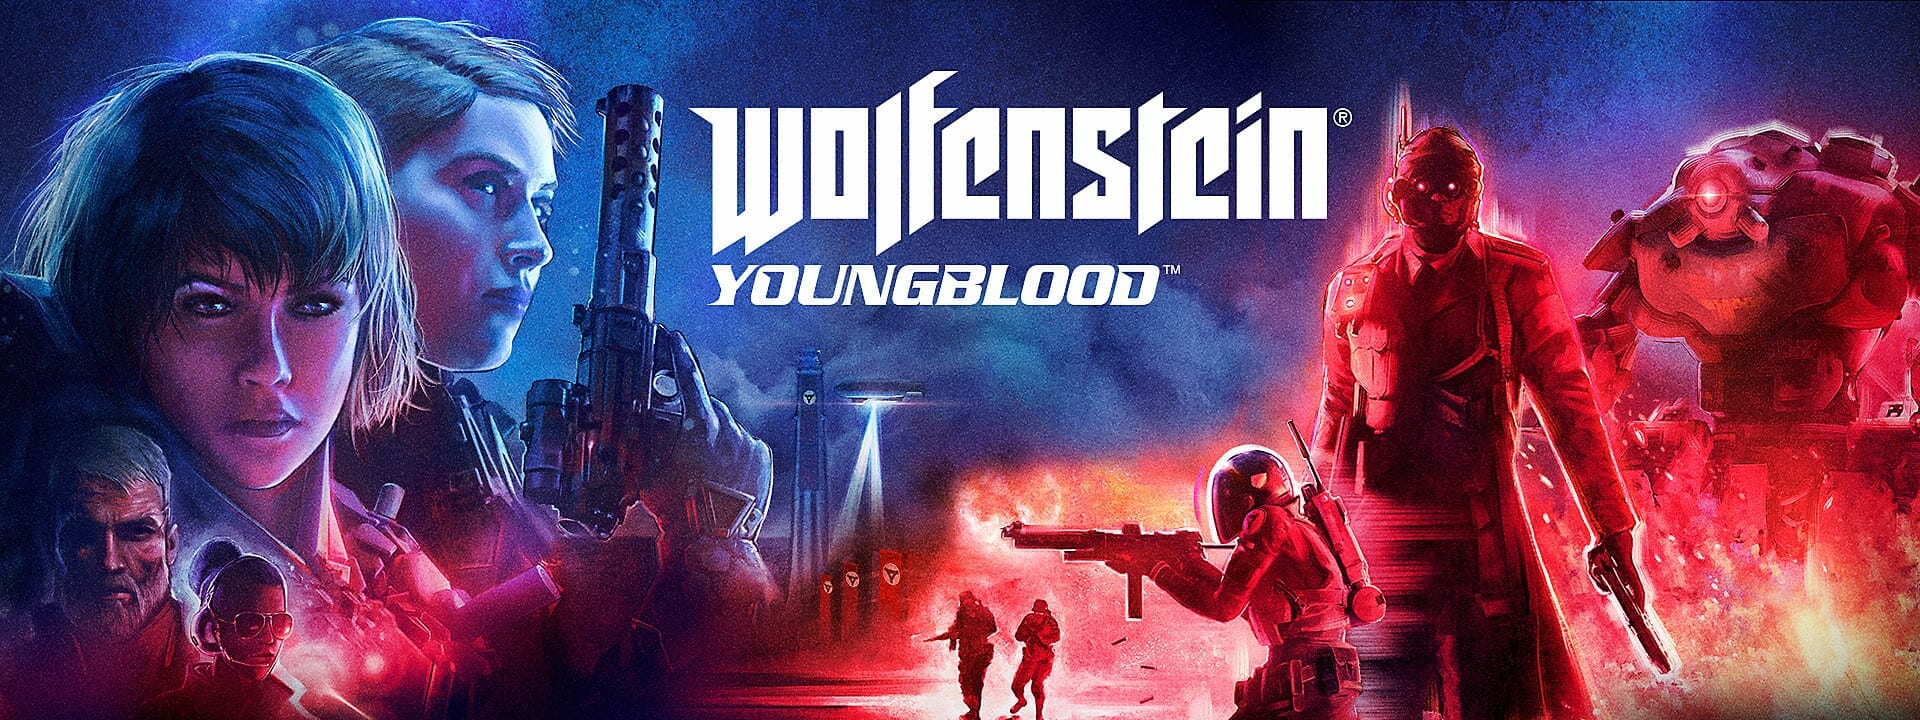 Wolfenstein Youngblood Switch File Size